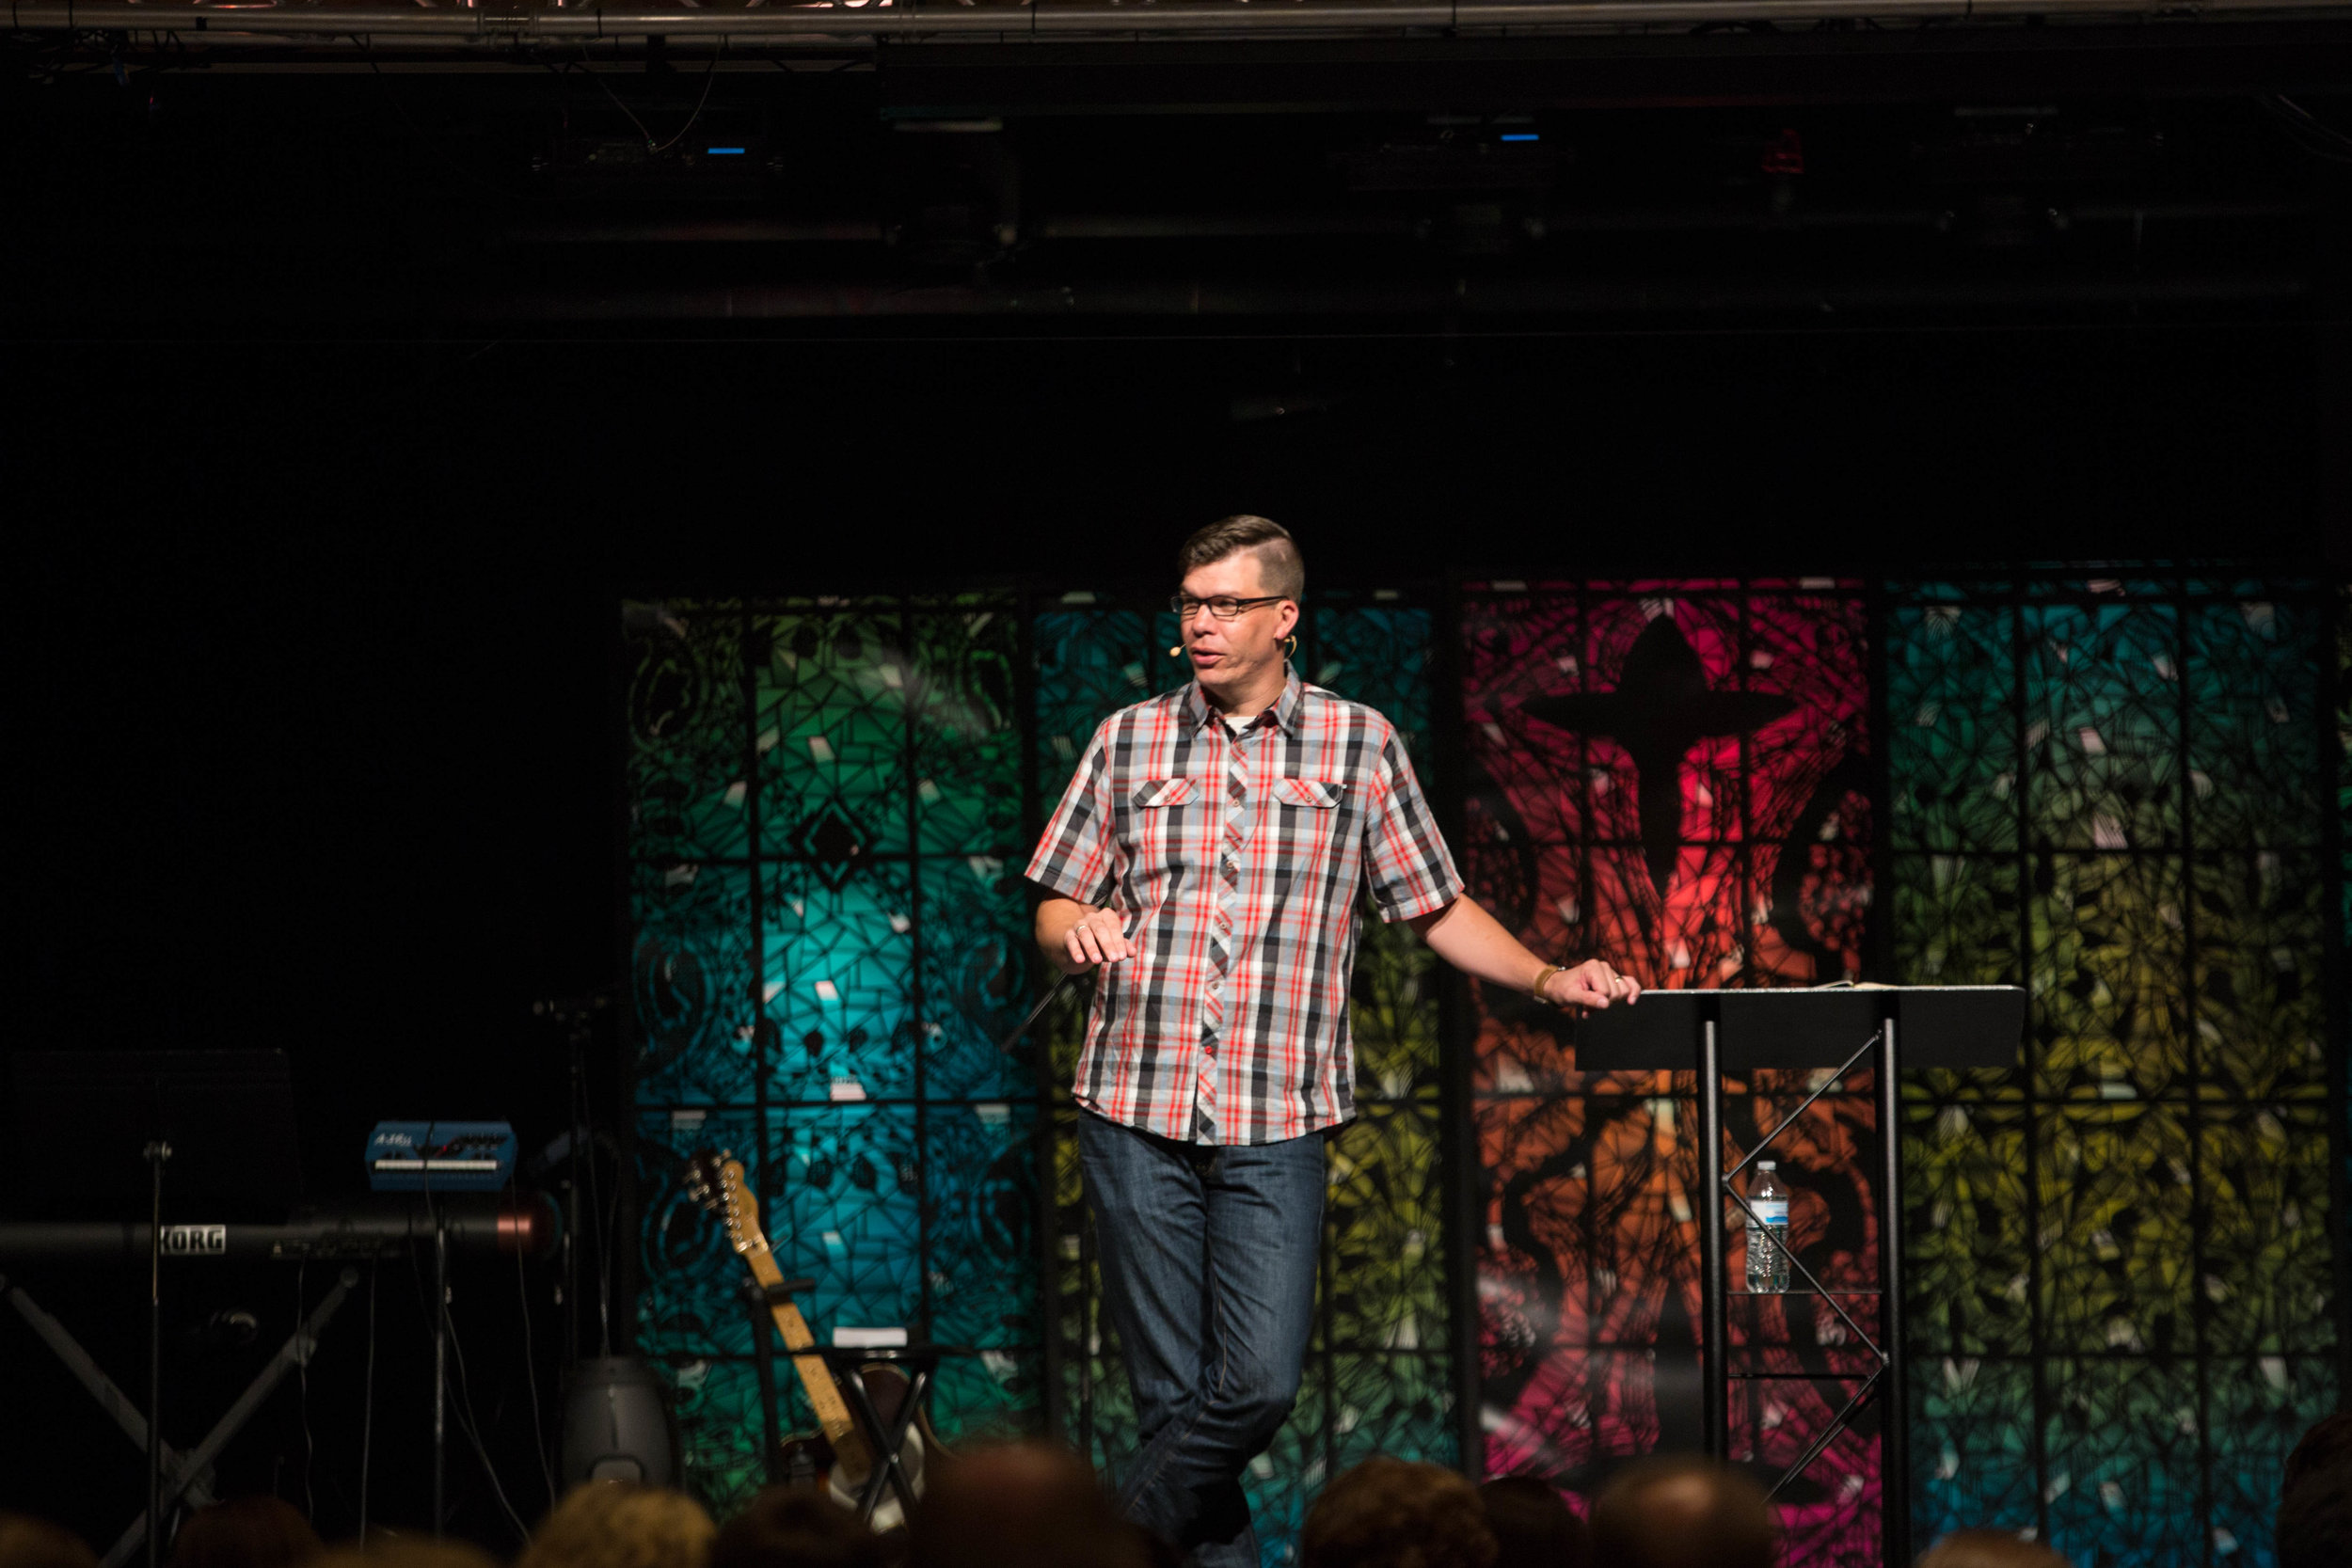 Pastor Micah preaching in front of stained glass stage design.